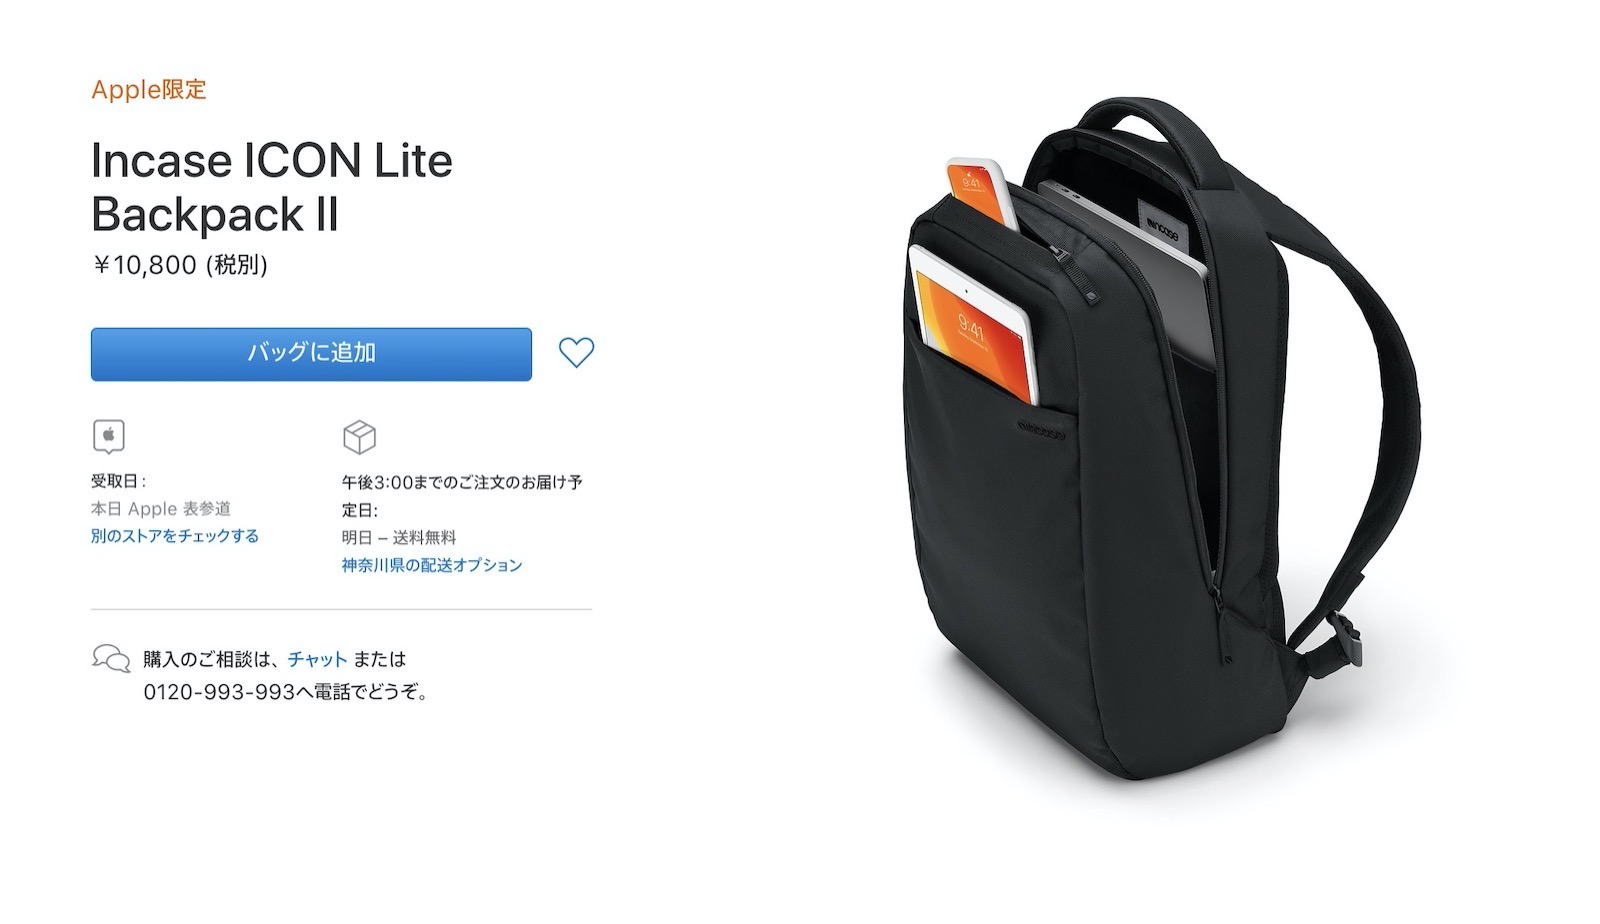 Incase icon lite backpack ii 1